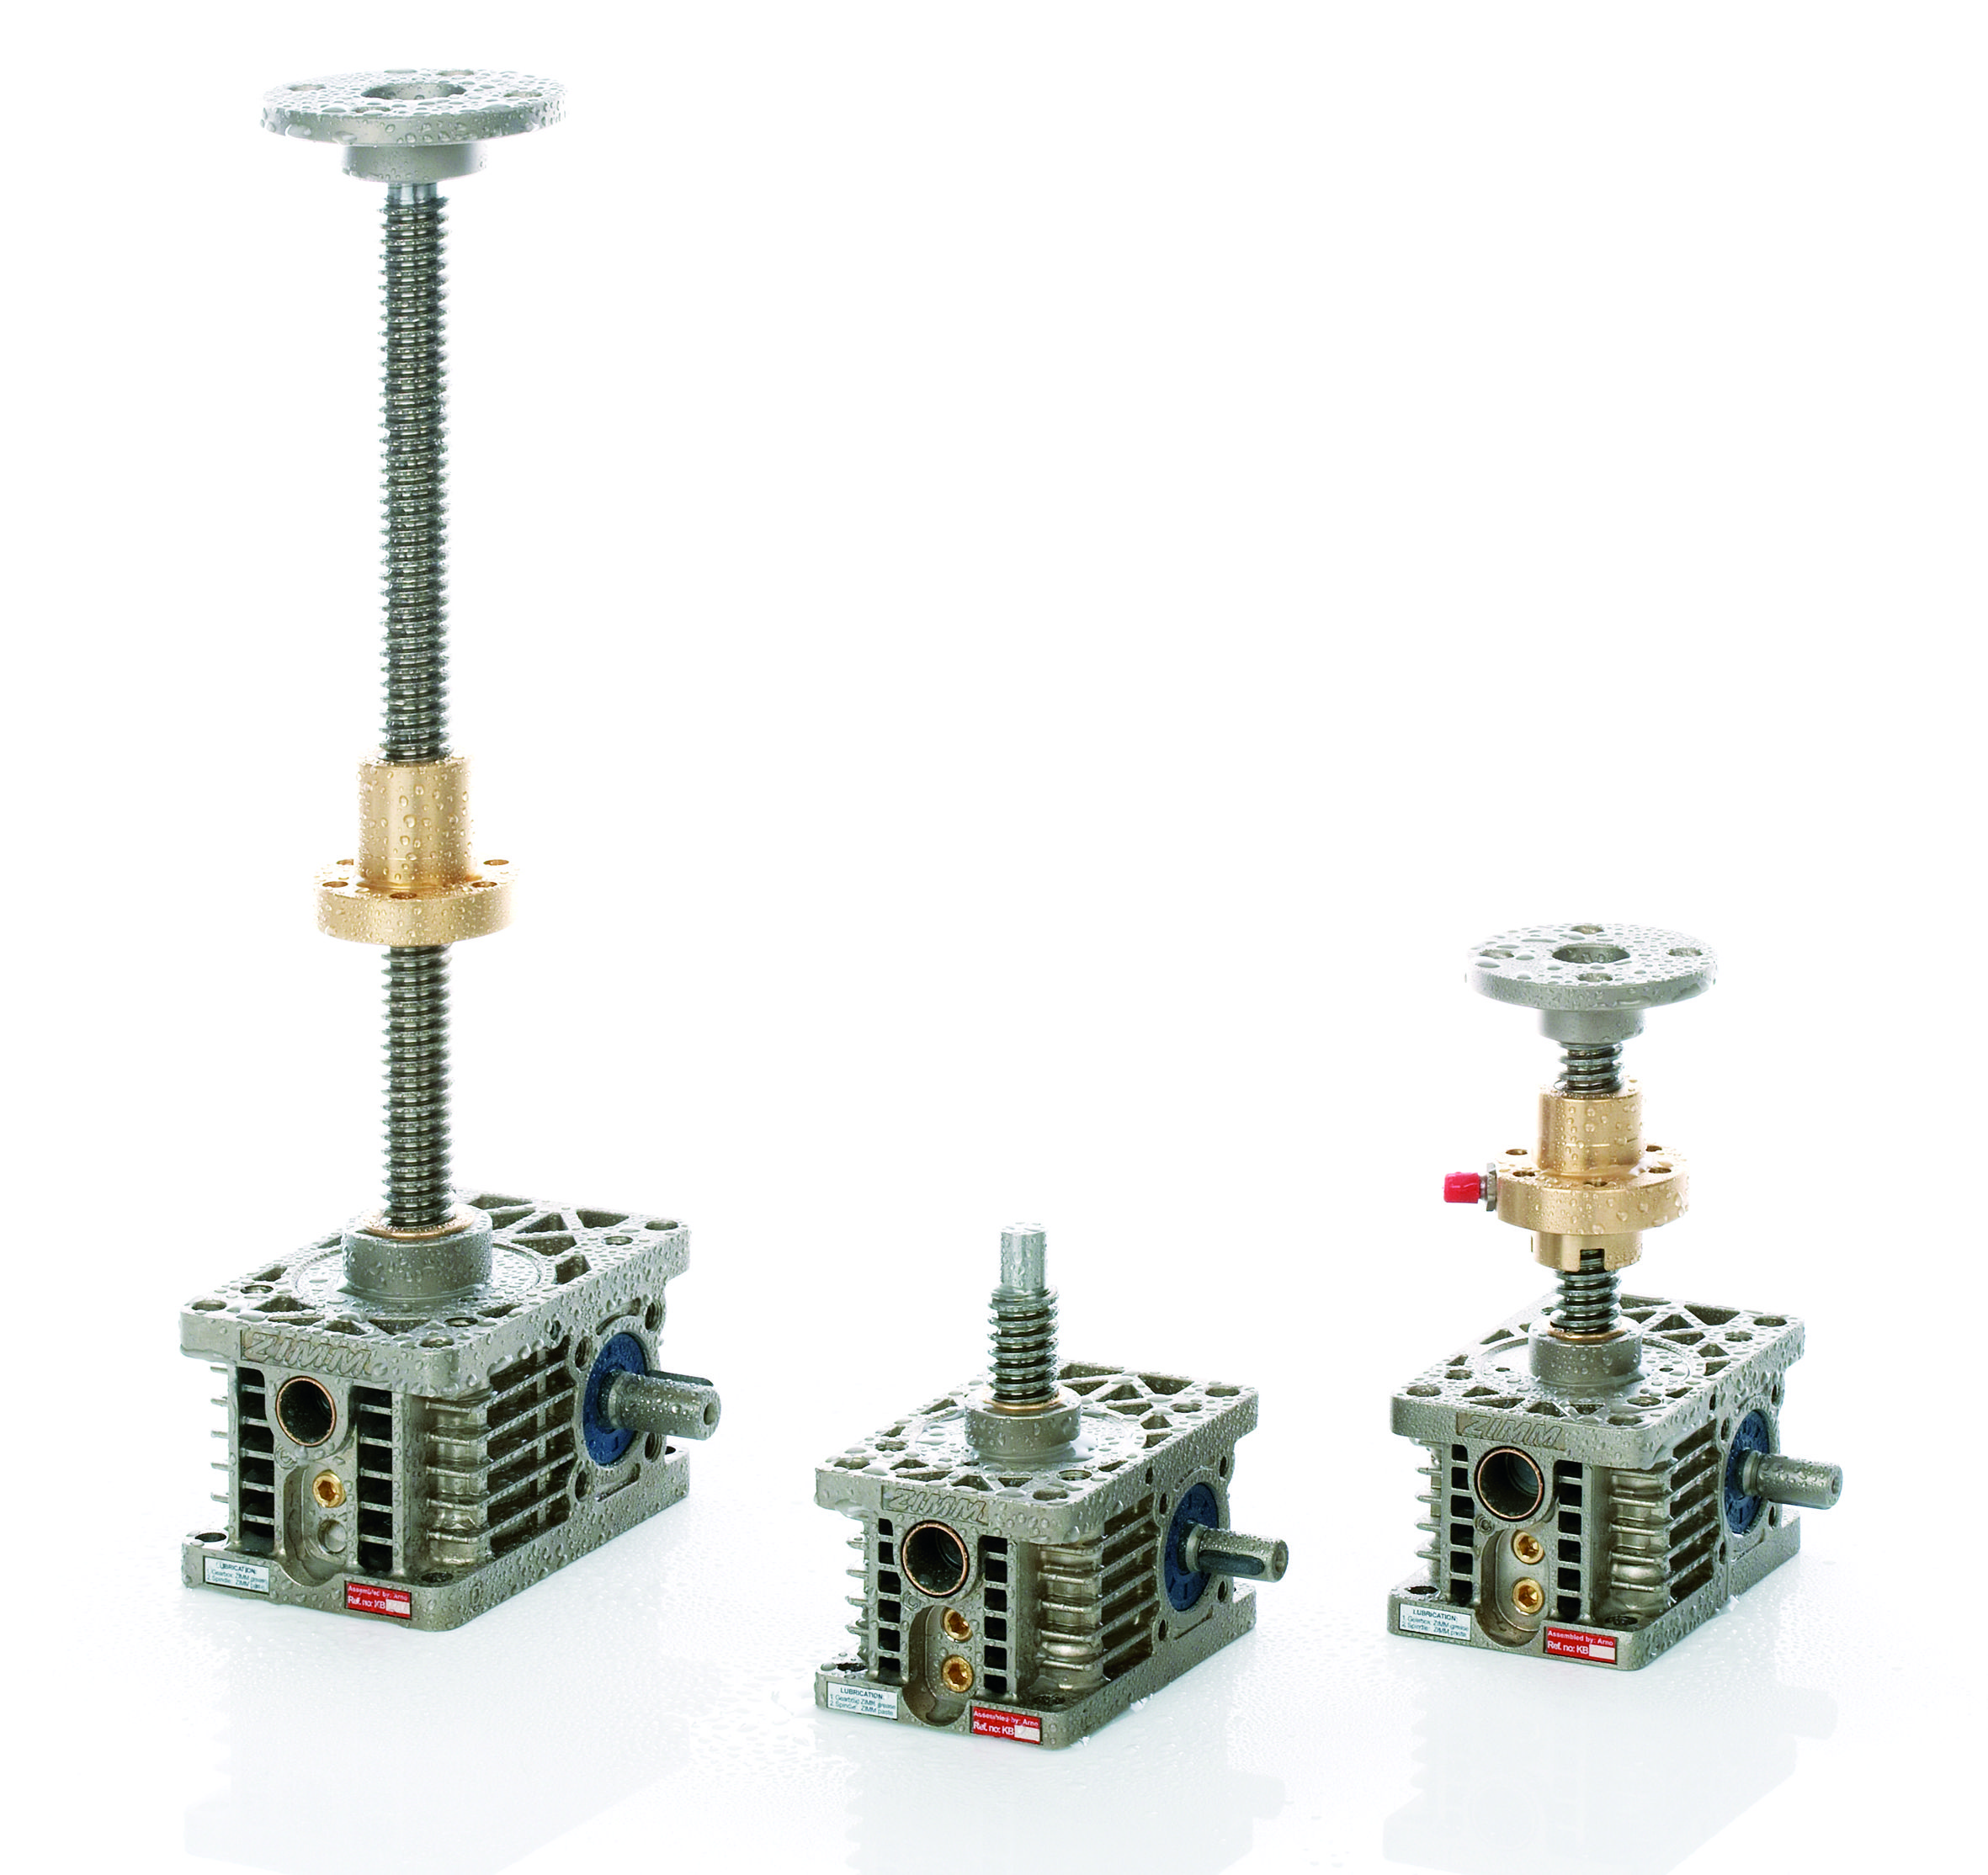 ZIMM Z Series Screw Jack Can be configured to lift, lower